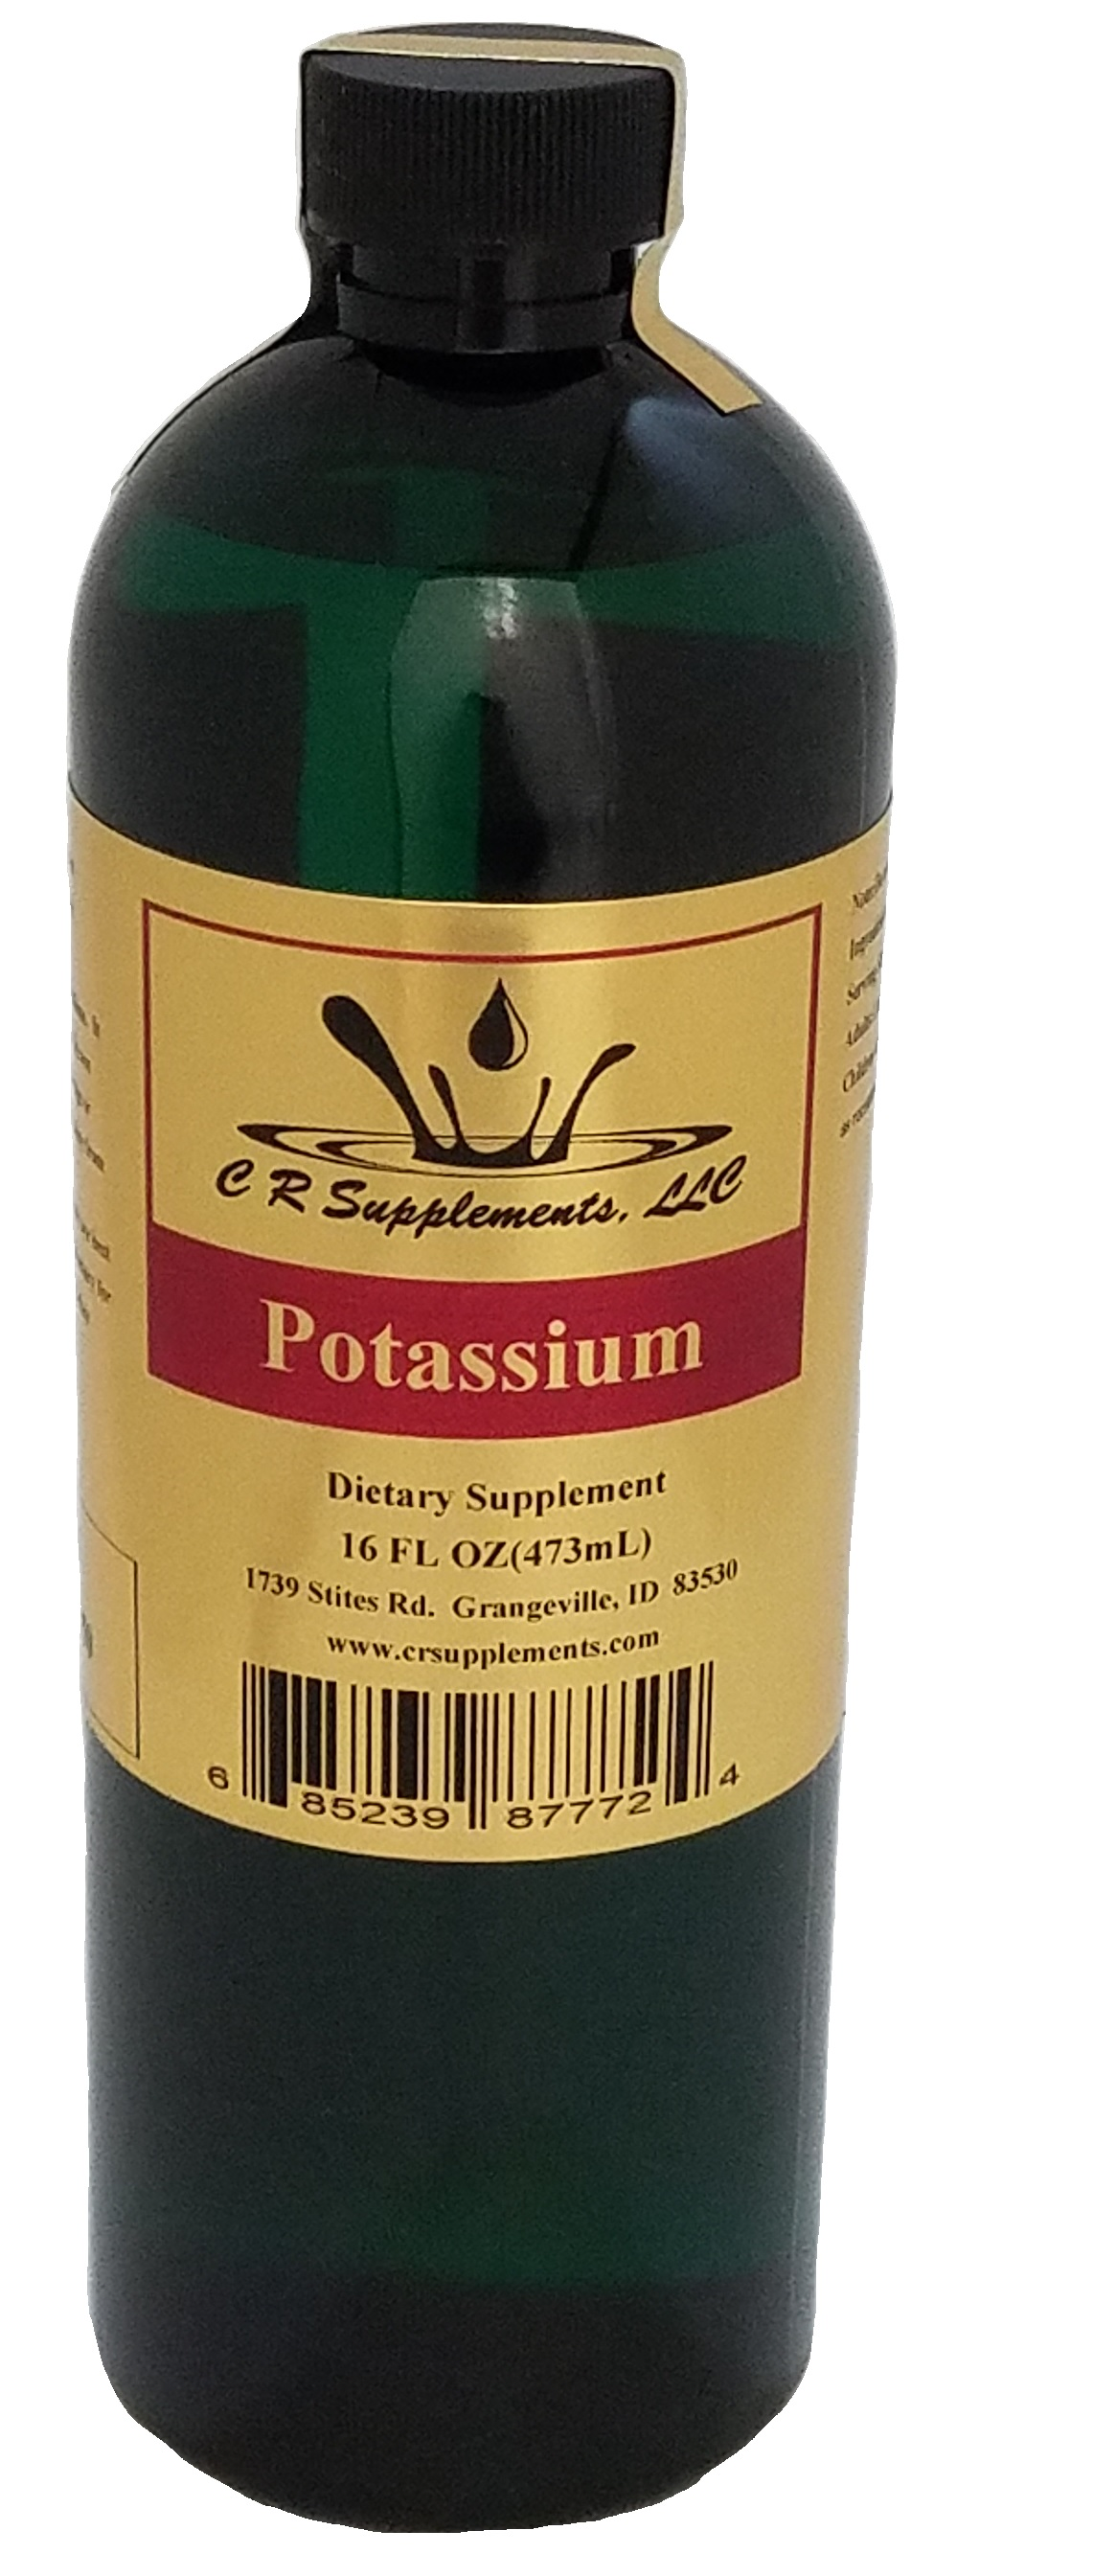 Potassium Dietary Supplement, Potassium, WaterOz Potassium Replacement, Liquid dietary supplement, Kosher of America approved, KOA approved, Pareve, vegan application, elemental mineral, flexible liquid mineral, maximum absorption